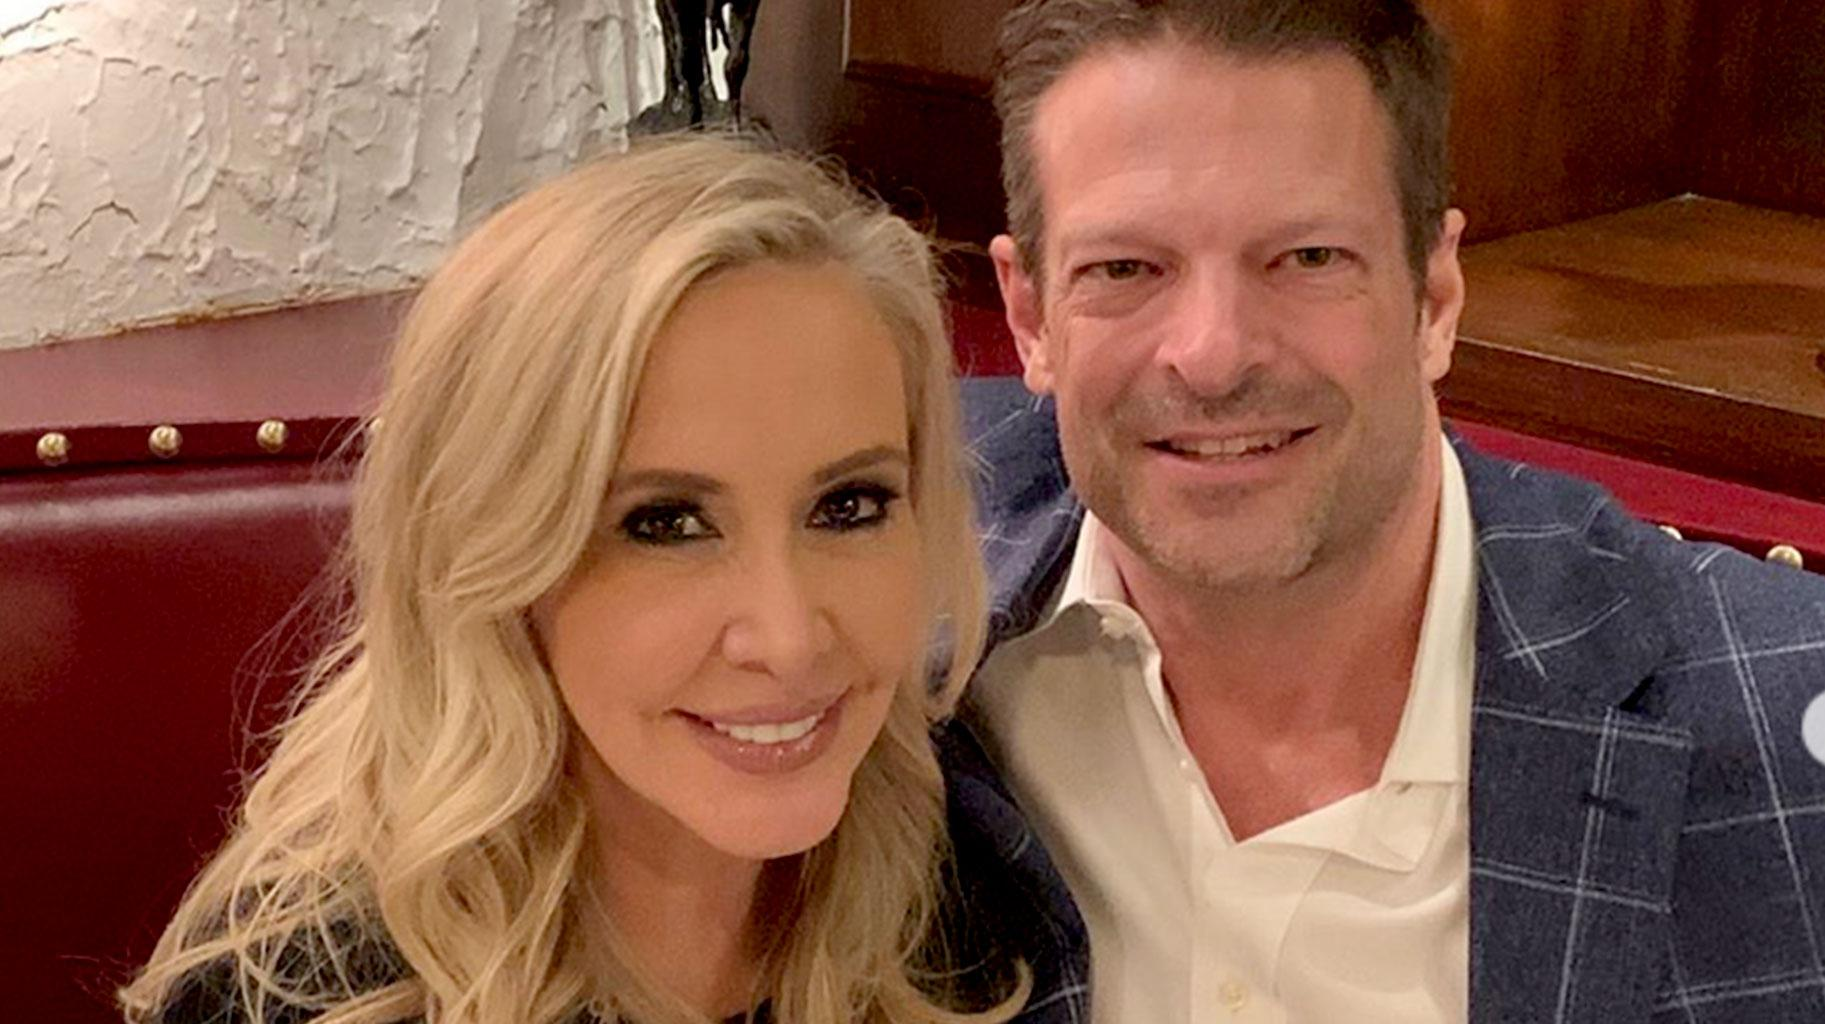 Shannon Beador Raves About The 'Connection' She Has With Her New Boyfriend